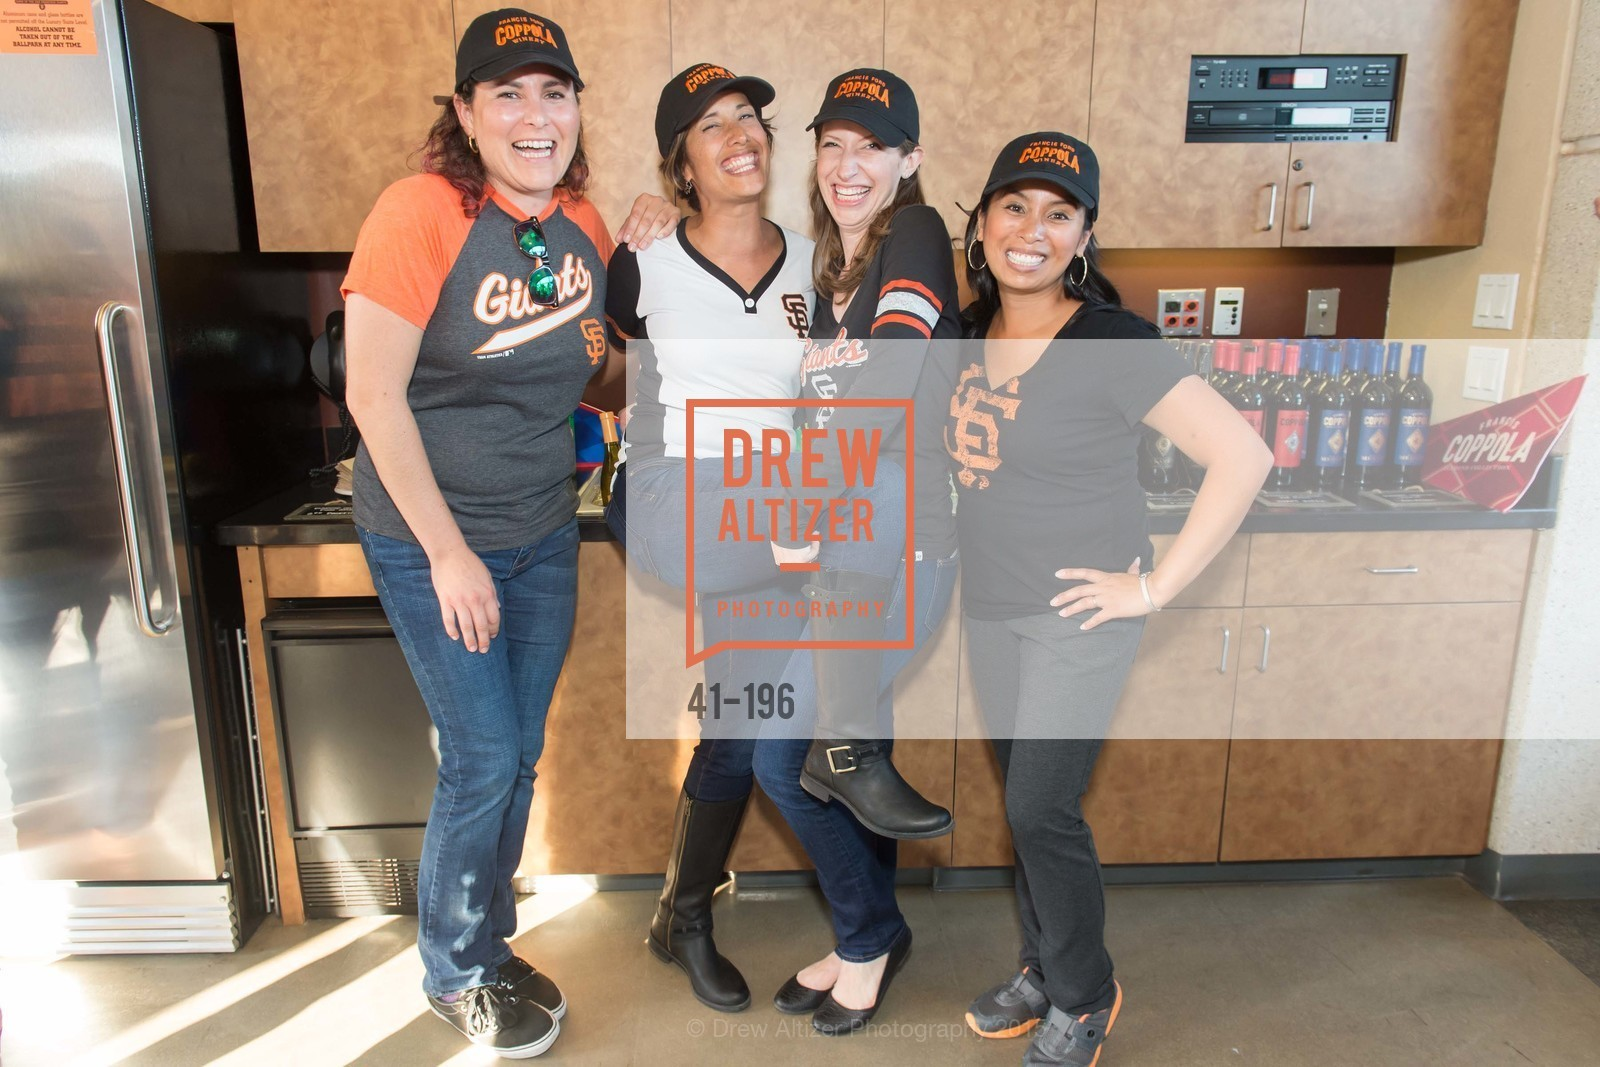 Natalie Dale, Lise Asimont, Meghan Rech, Tondi Bolten, Francis Ford Coppola Winery Presents Diamond on the Diamond, San Francisco Giants AT&T Park, Virgin America Loft. 24 Willie Mays Plaza, July 10th, 2015,Drew Altizer, Drew Altizer Photography, full-service agency, private events, San Francisco photographer, photographer california